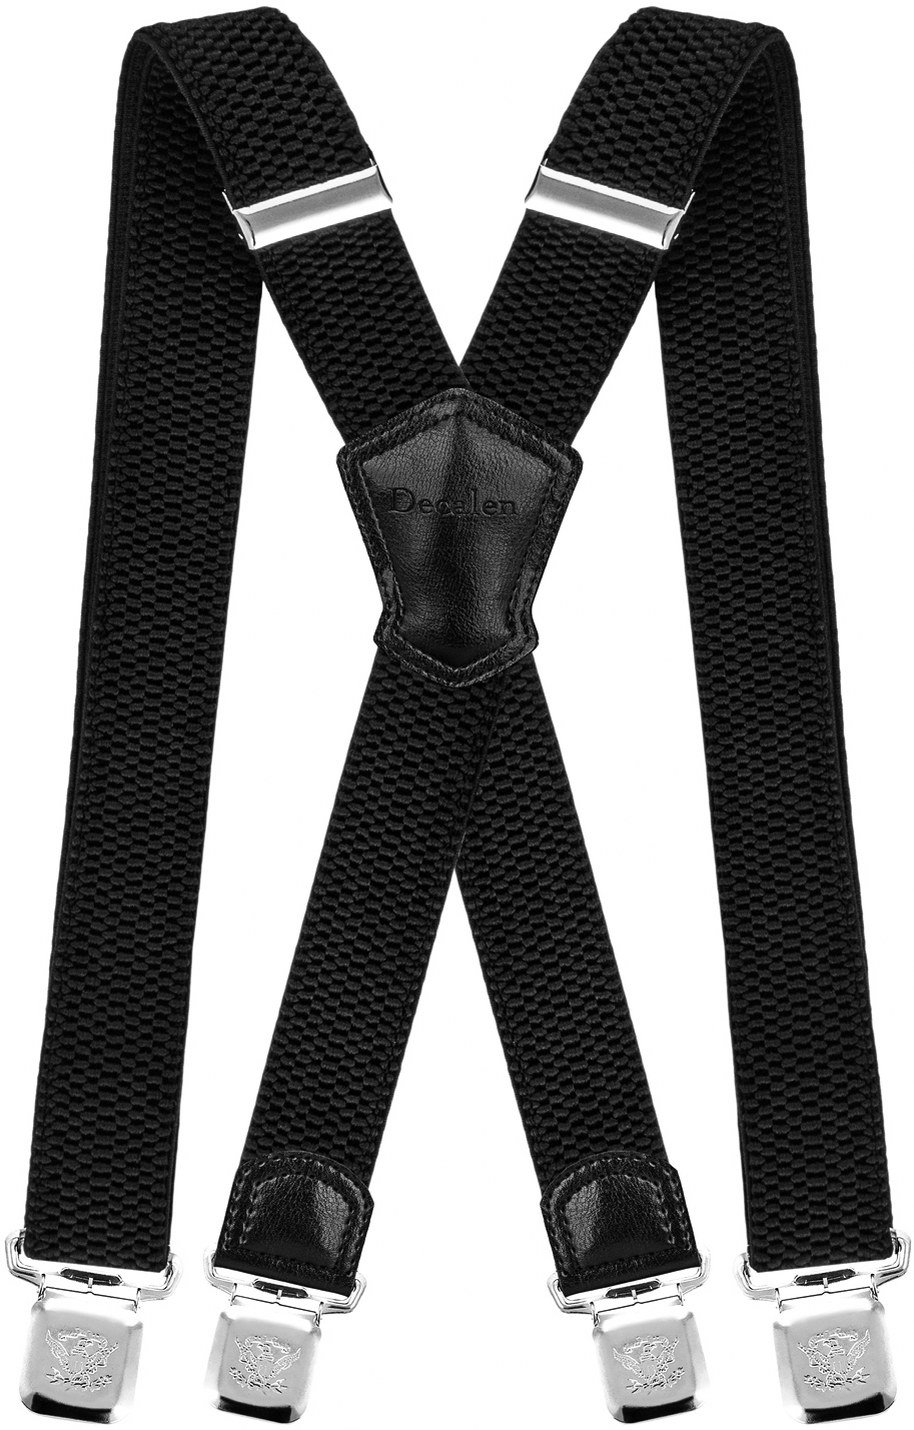 c17779575040 Decalen Mens Suspenders Very Strong Clips Heavy Duty Braces Big and Tall X  Style product image